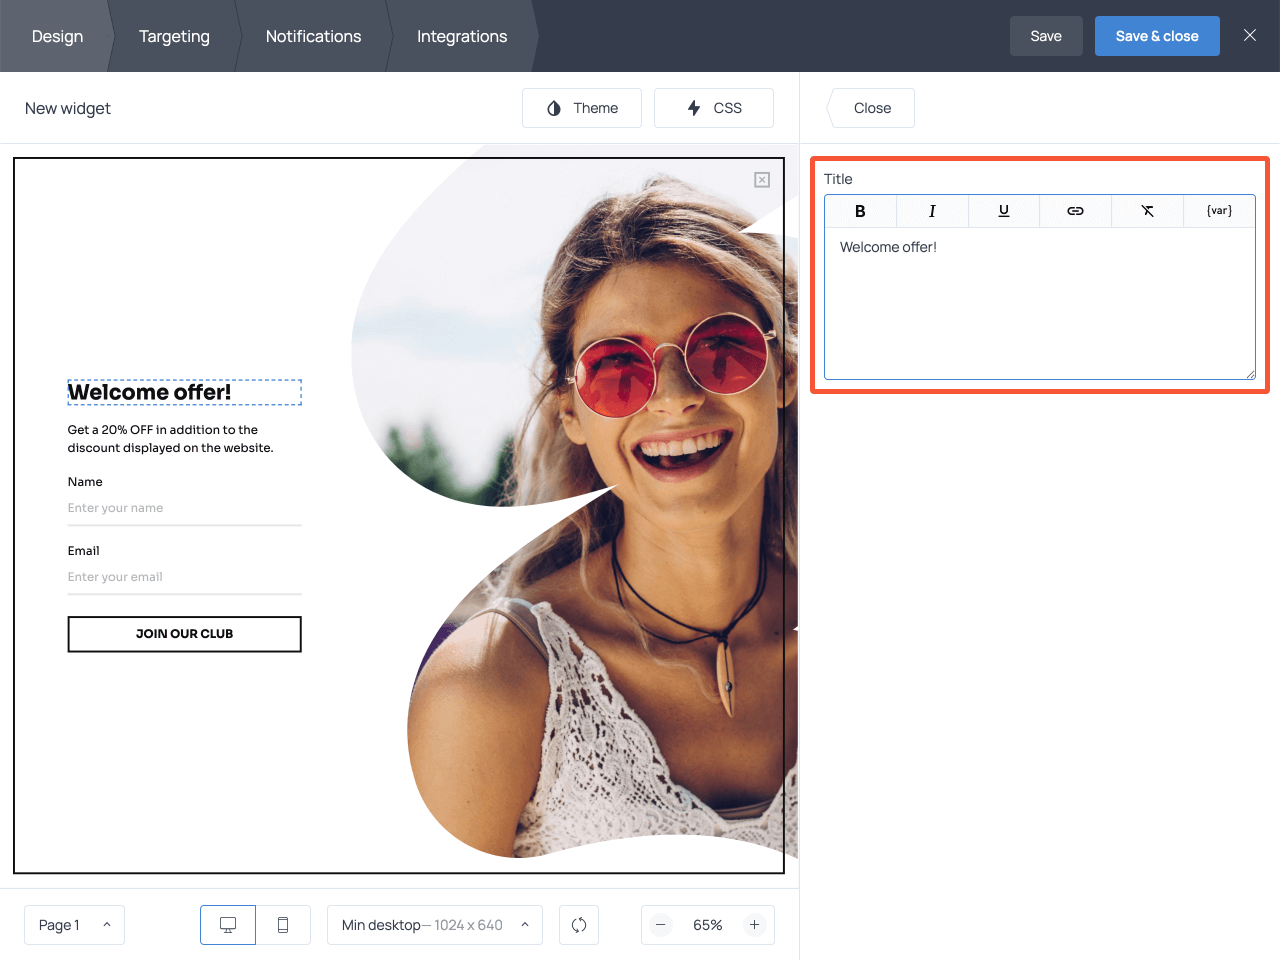 How to adjust the copy on a website overlay